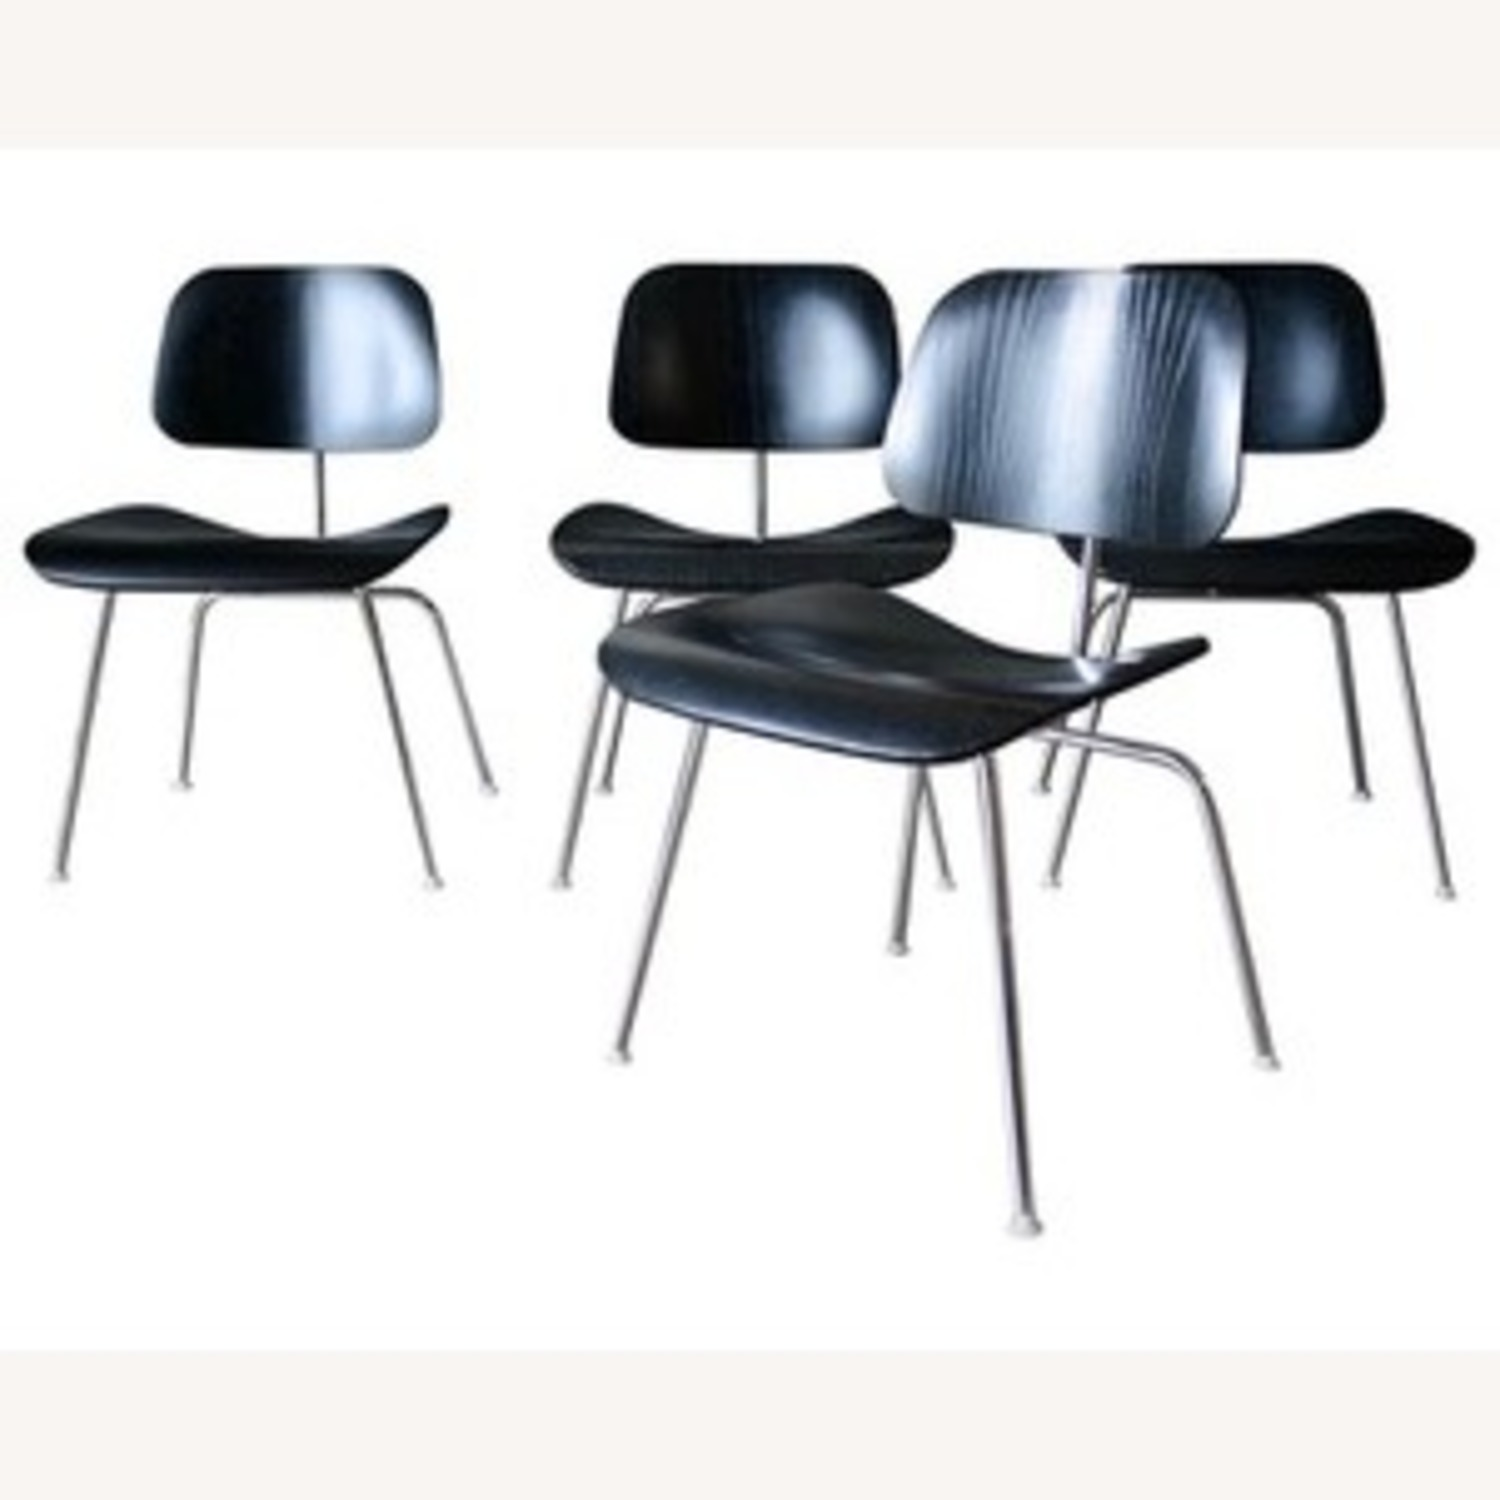 Herman Miller Eames DCM Ebony Stained Ash Dining Chairs